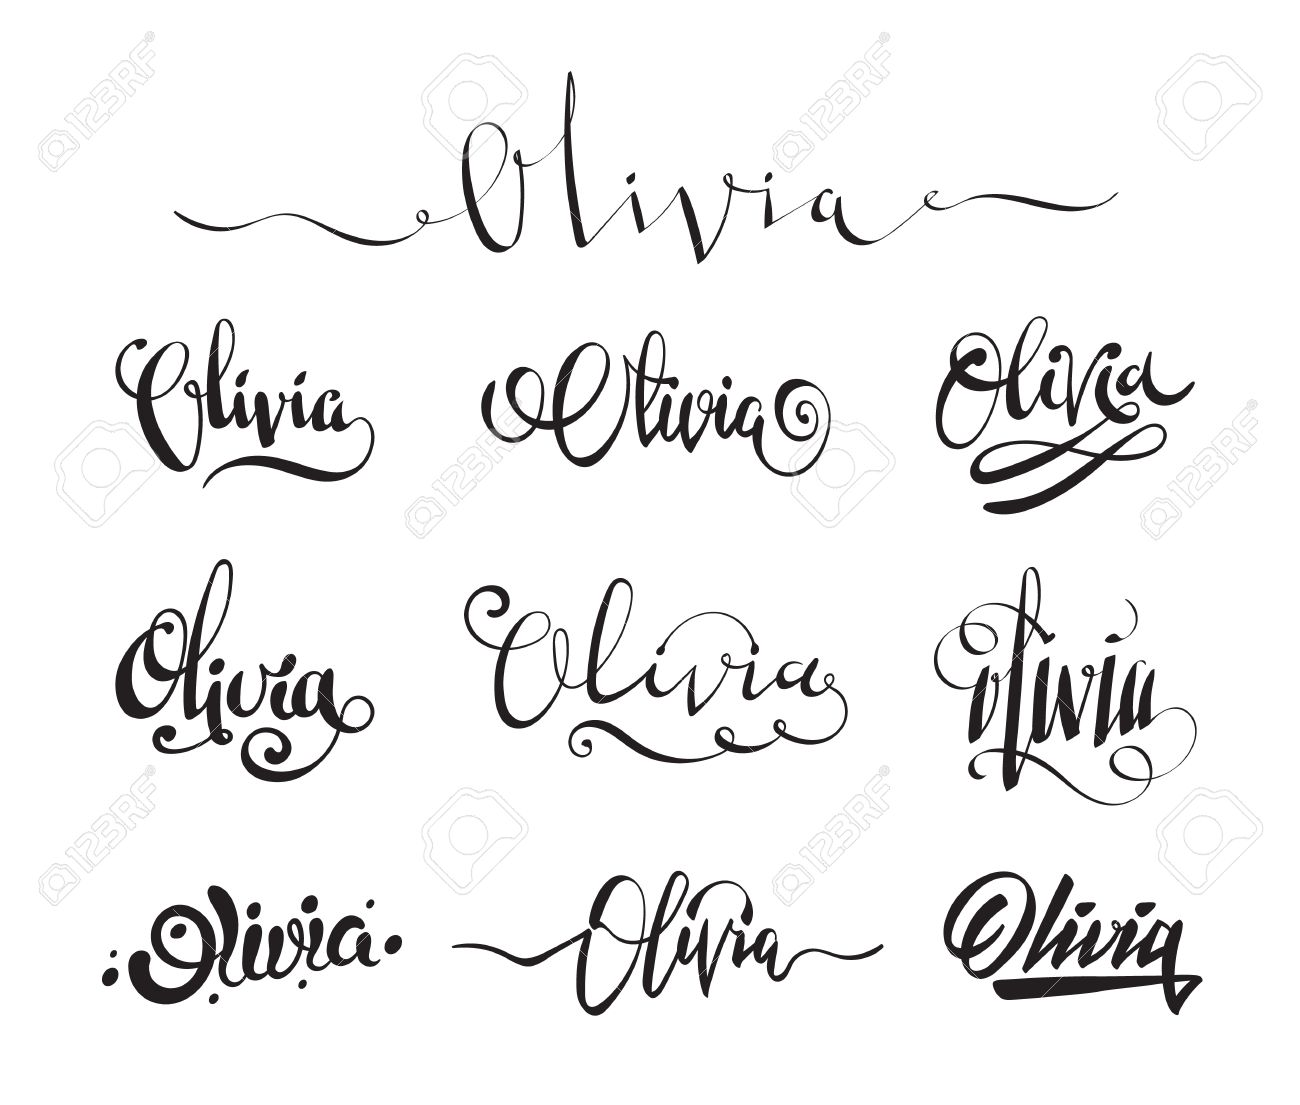 Personal Name Olivia Vector Handwritten Calligraphy Tattoo Design